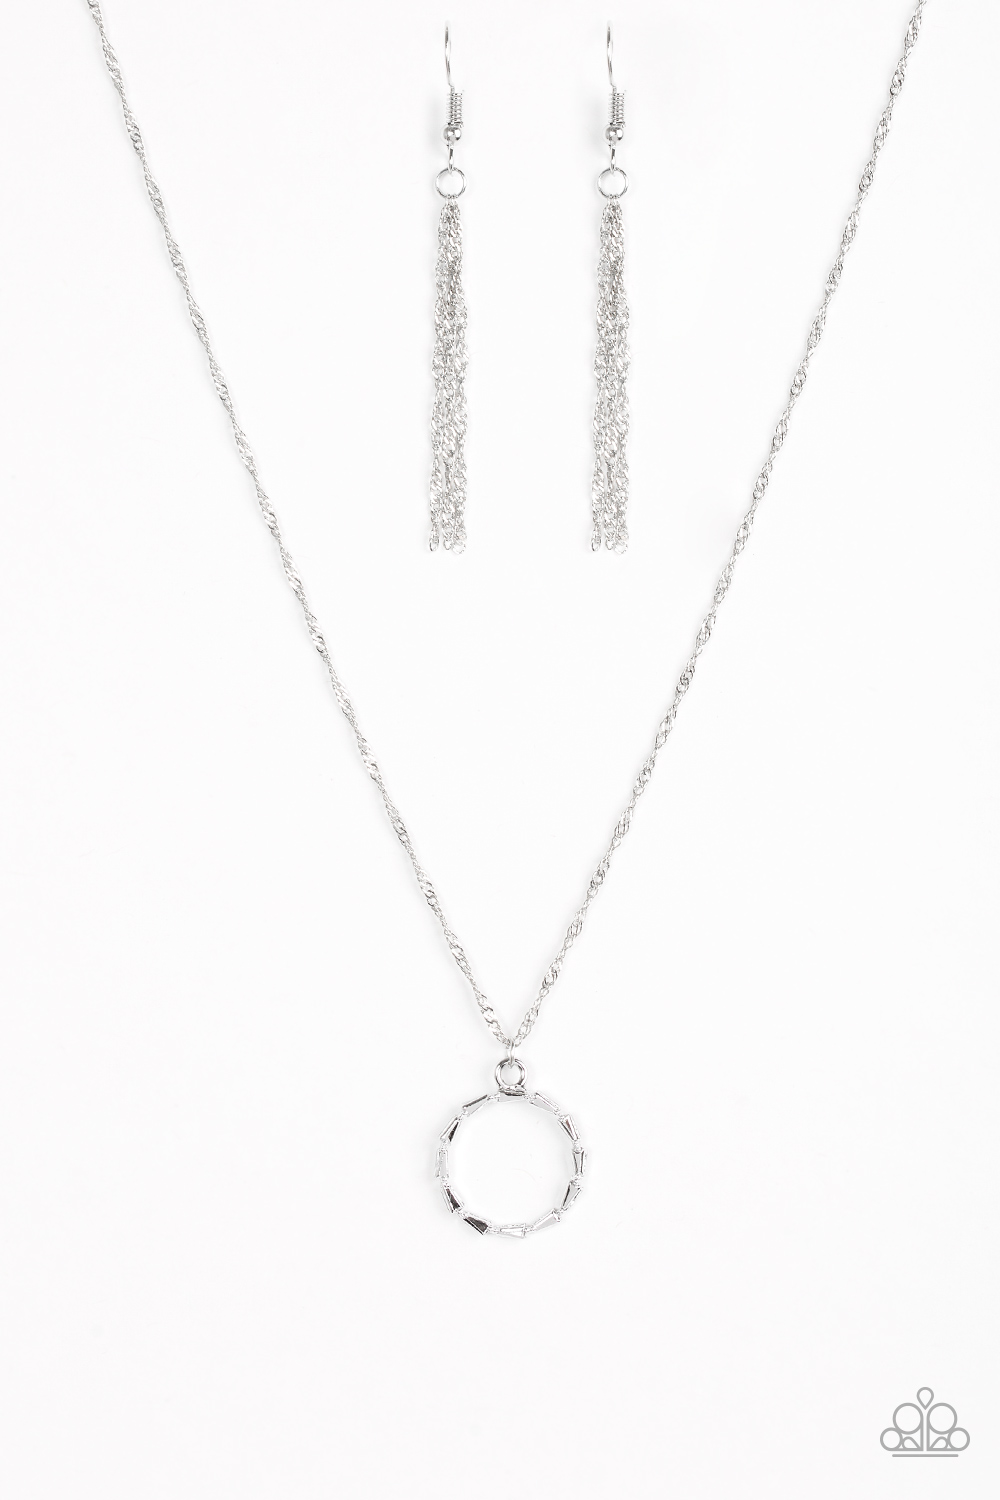 Paparazzi accessories simply simple silver for Simply simple